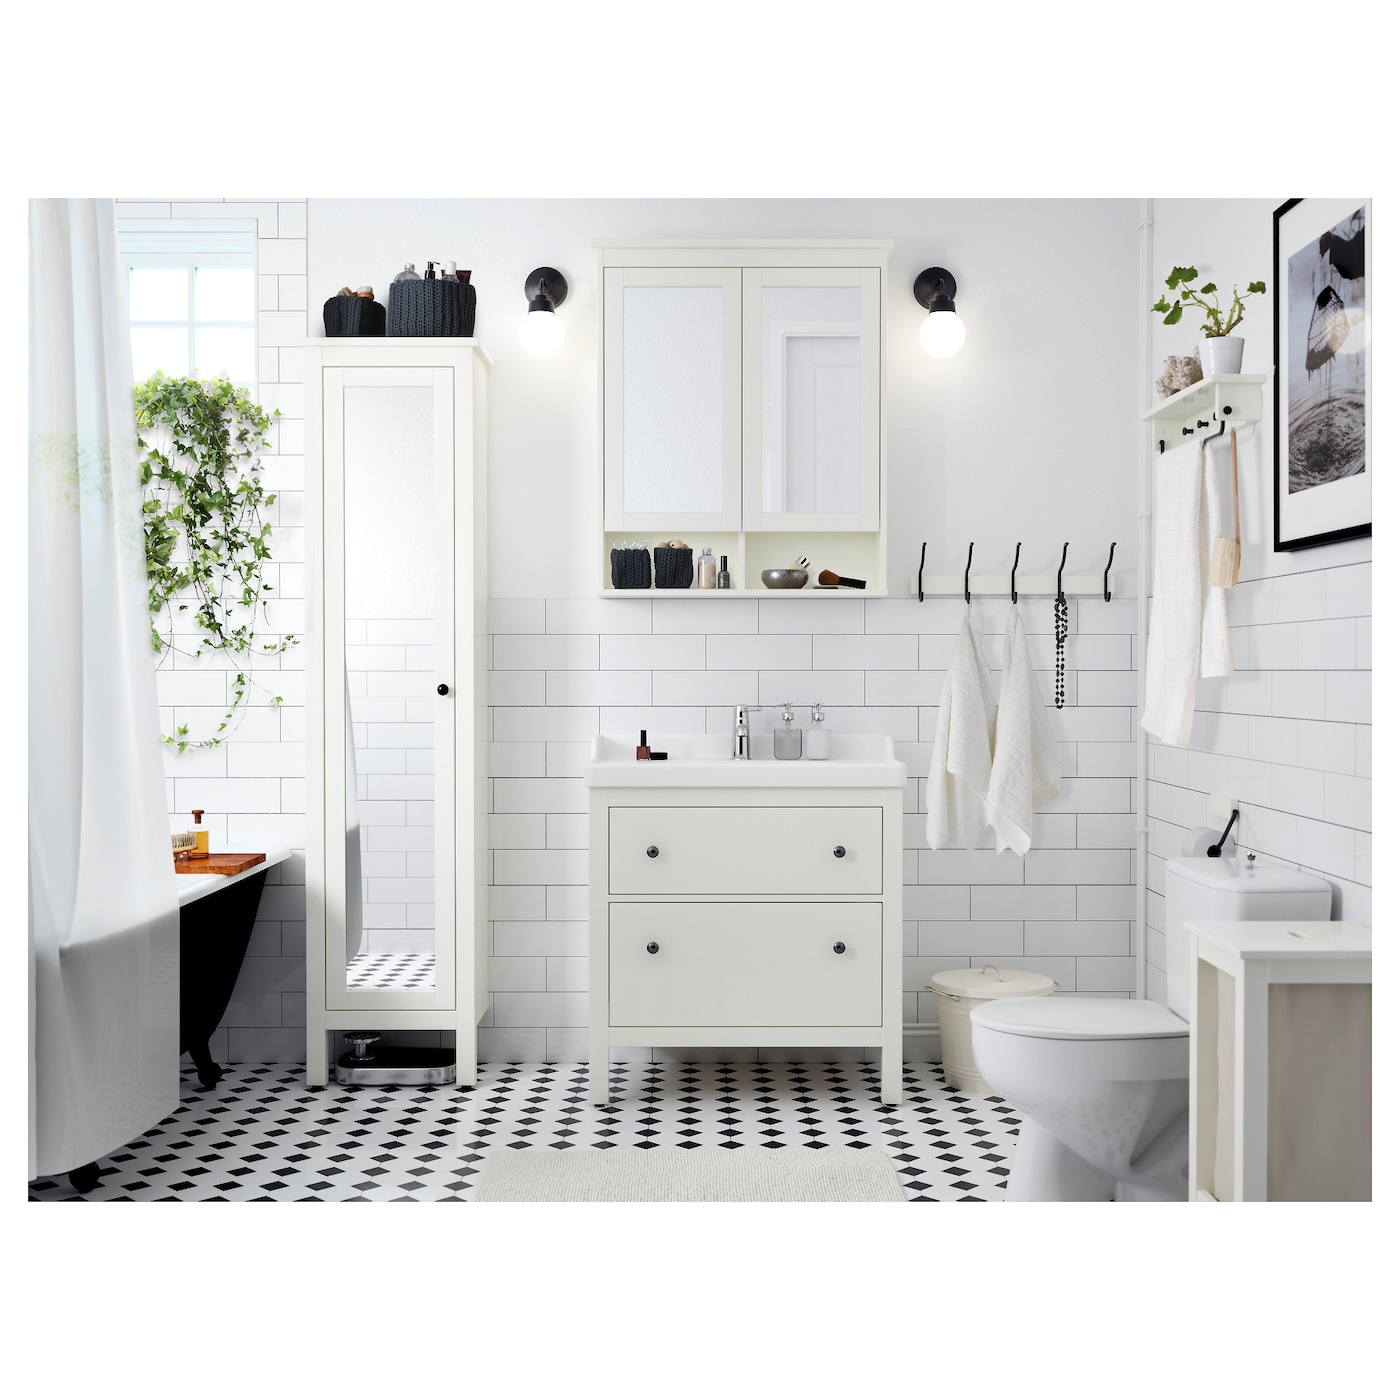 HEMNES High cabinet with mirror door White 49 x 31 x 200 cm - IKEA